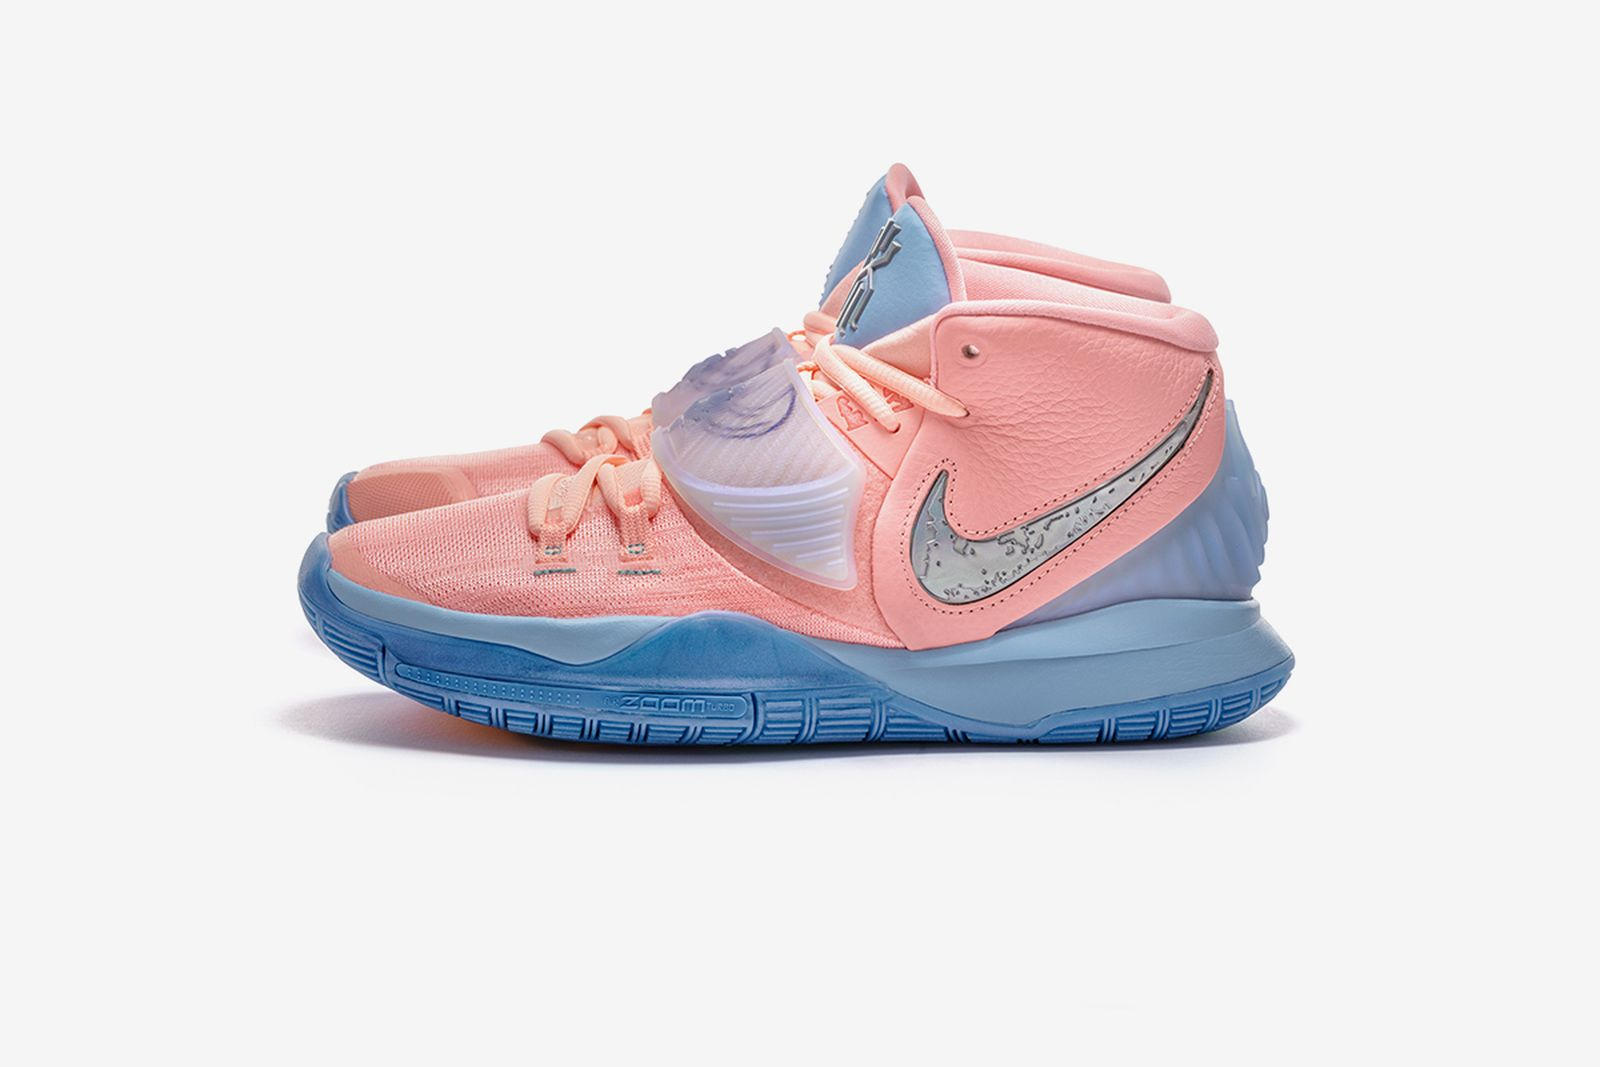 concepts-nike-kyrie-6-release-date-price-22